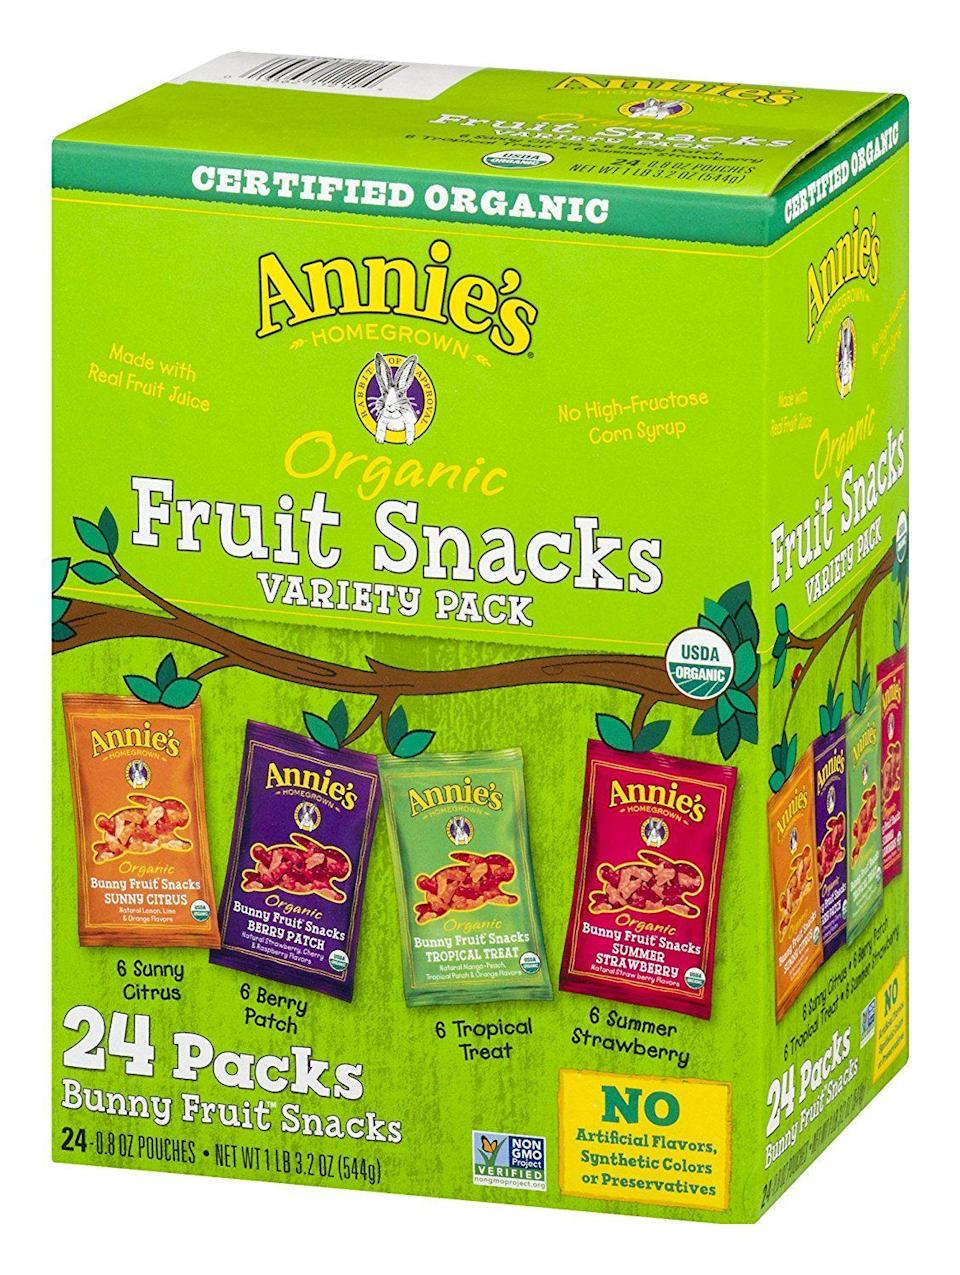 """<p><strong>Annie's Homegrown</strong></p><p>amazon.com</p><p><a href=""""https://www.amazon.com/dp/B003V5V5J6?tag=syn-yahoo-20&ascsubtag=%5Bartid%7C1782.g.4497%5Bsrc%7Cyahoo-us"""" rel=""""nofollow noopener"""" target=""""_blank"""" data-ylk=""""slk:BUY NOW"""" class=""""link rapid-noclick-resp"""">BUY NOW</a></p><p>You're never too old for fruit snacks.</p>"""